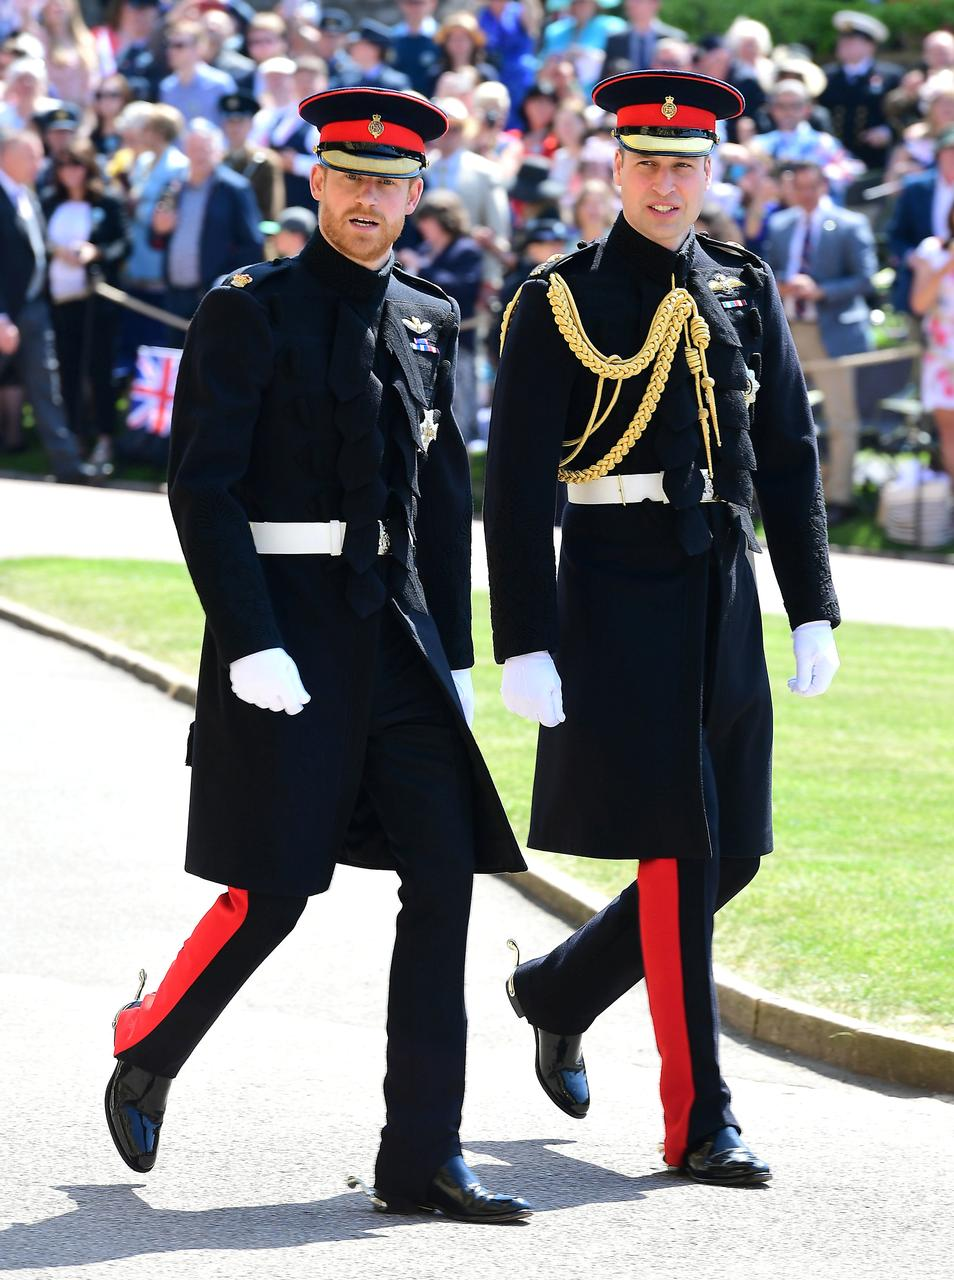 Prince Harry And The Duke Of Cambridge Arrive At St George S Chapel Windsor Castle For Wedding Meghan Markle In Britain